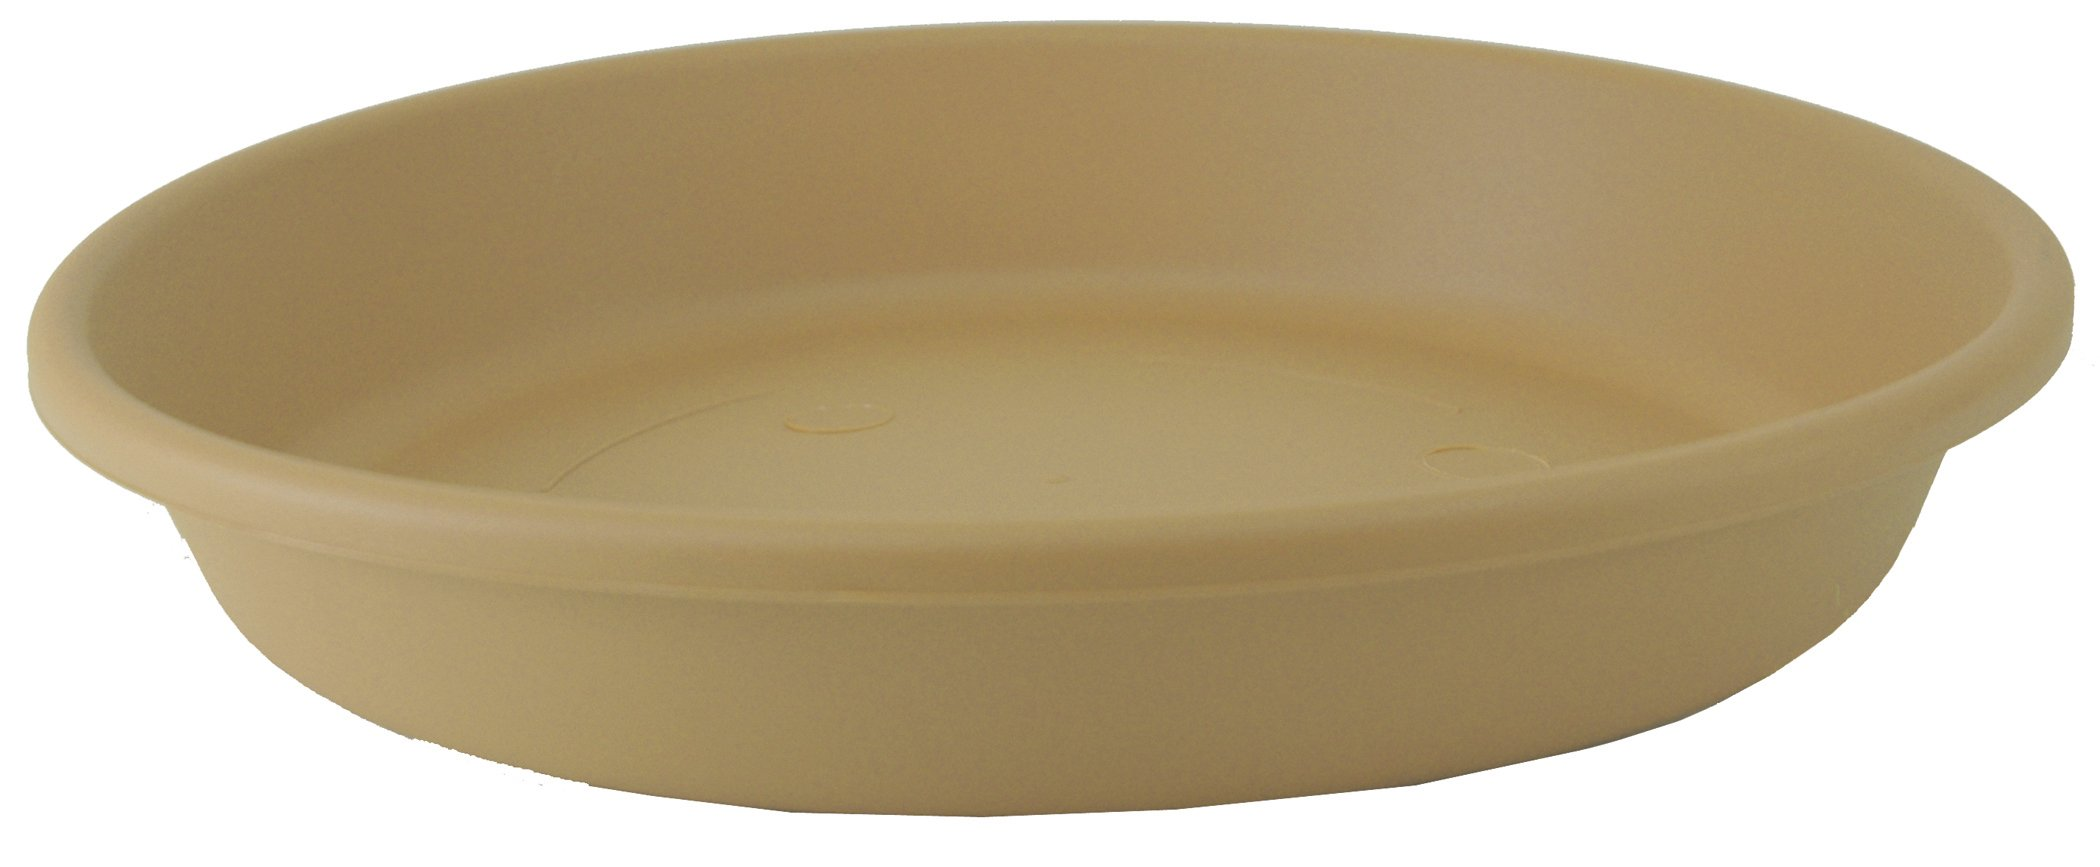 Akro-Mils SLI17000A34 Classic Saucer for 16-Inch Classic Pot, Sandstone, 16.13-Inch by Akro-Mils